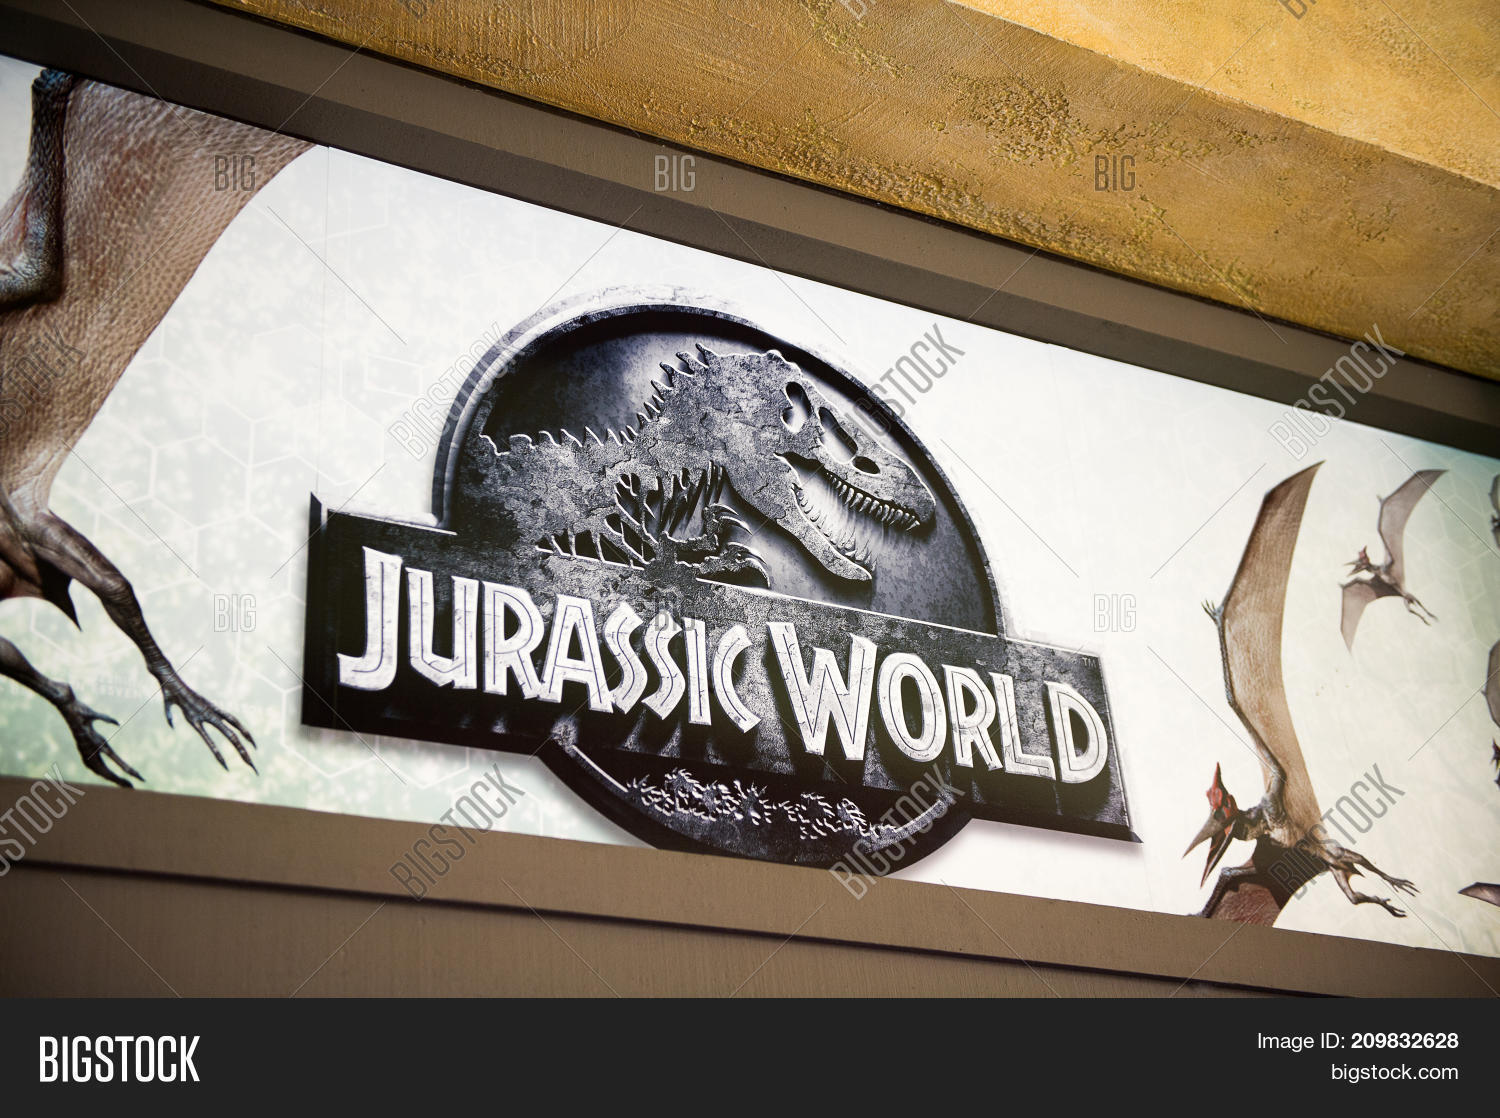 Los Angeles Usa Sep 27 2015 Jurassic World Logo In Jurassic Park Area In The Universal Studios Hollywood Park Jurassic Park Is A 1993 American Adventure